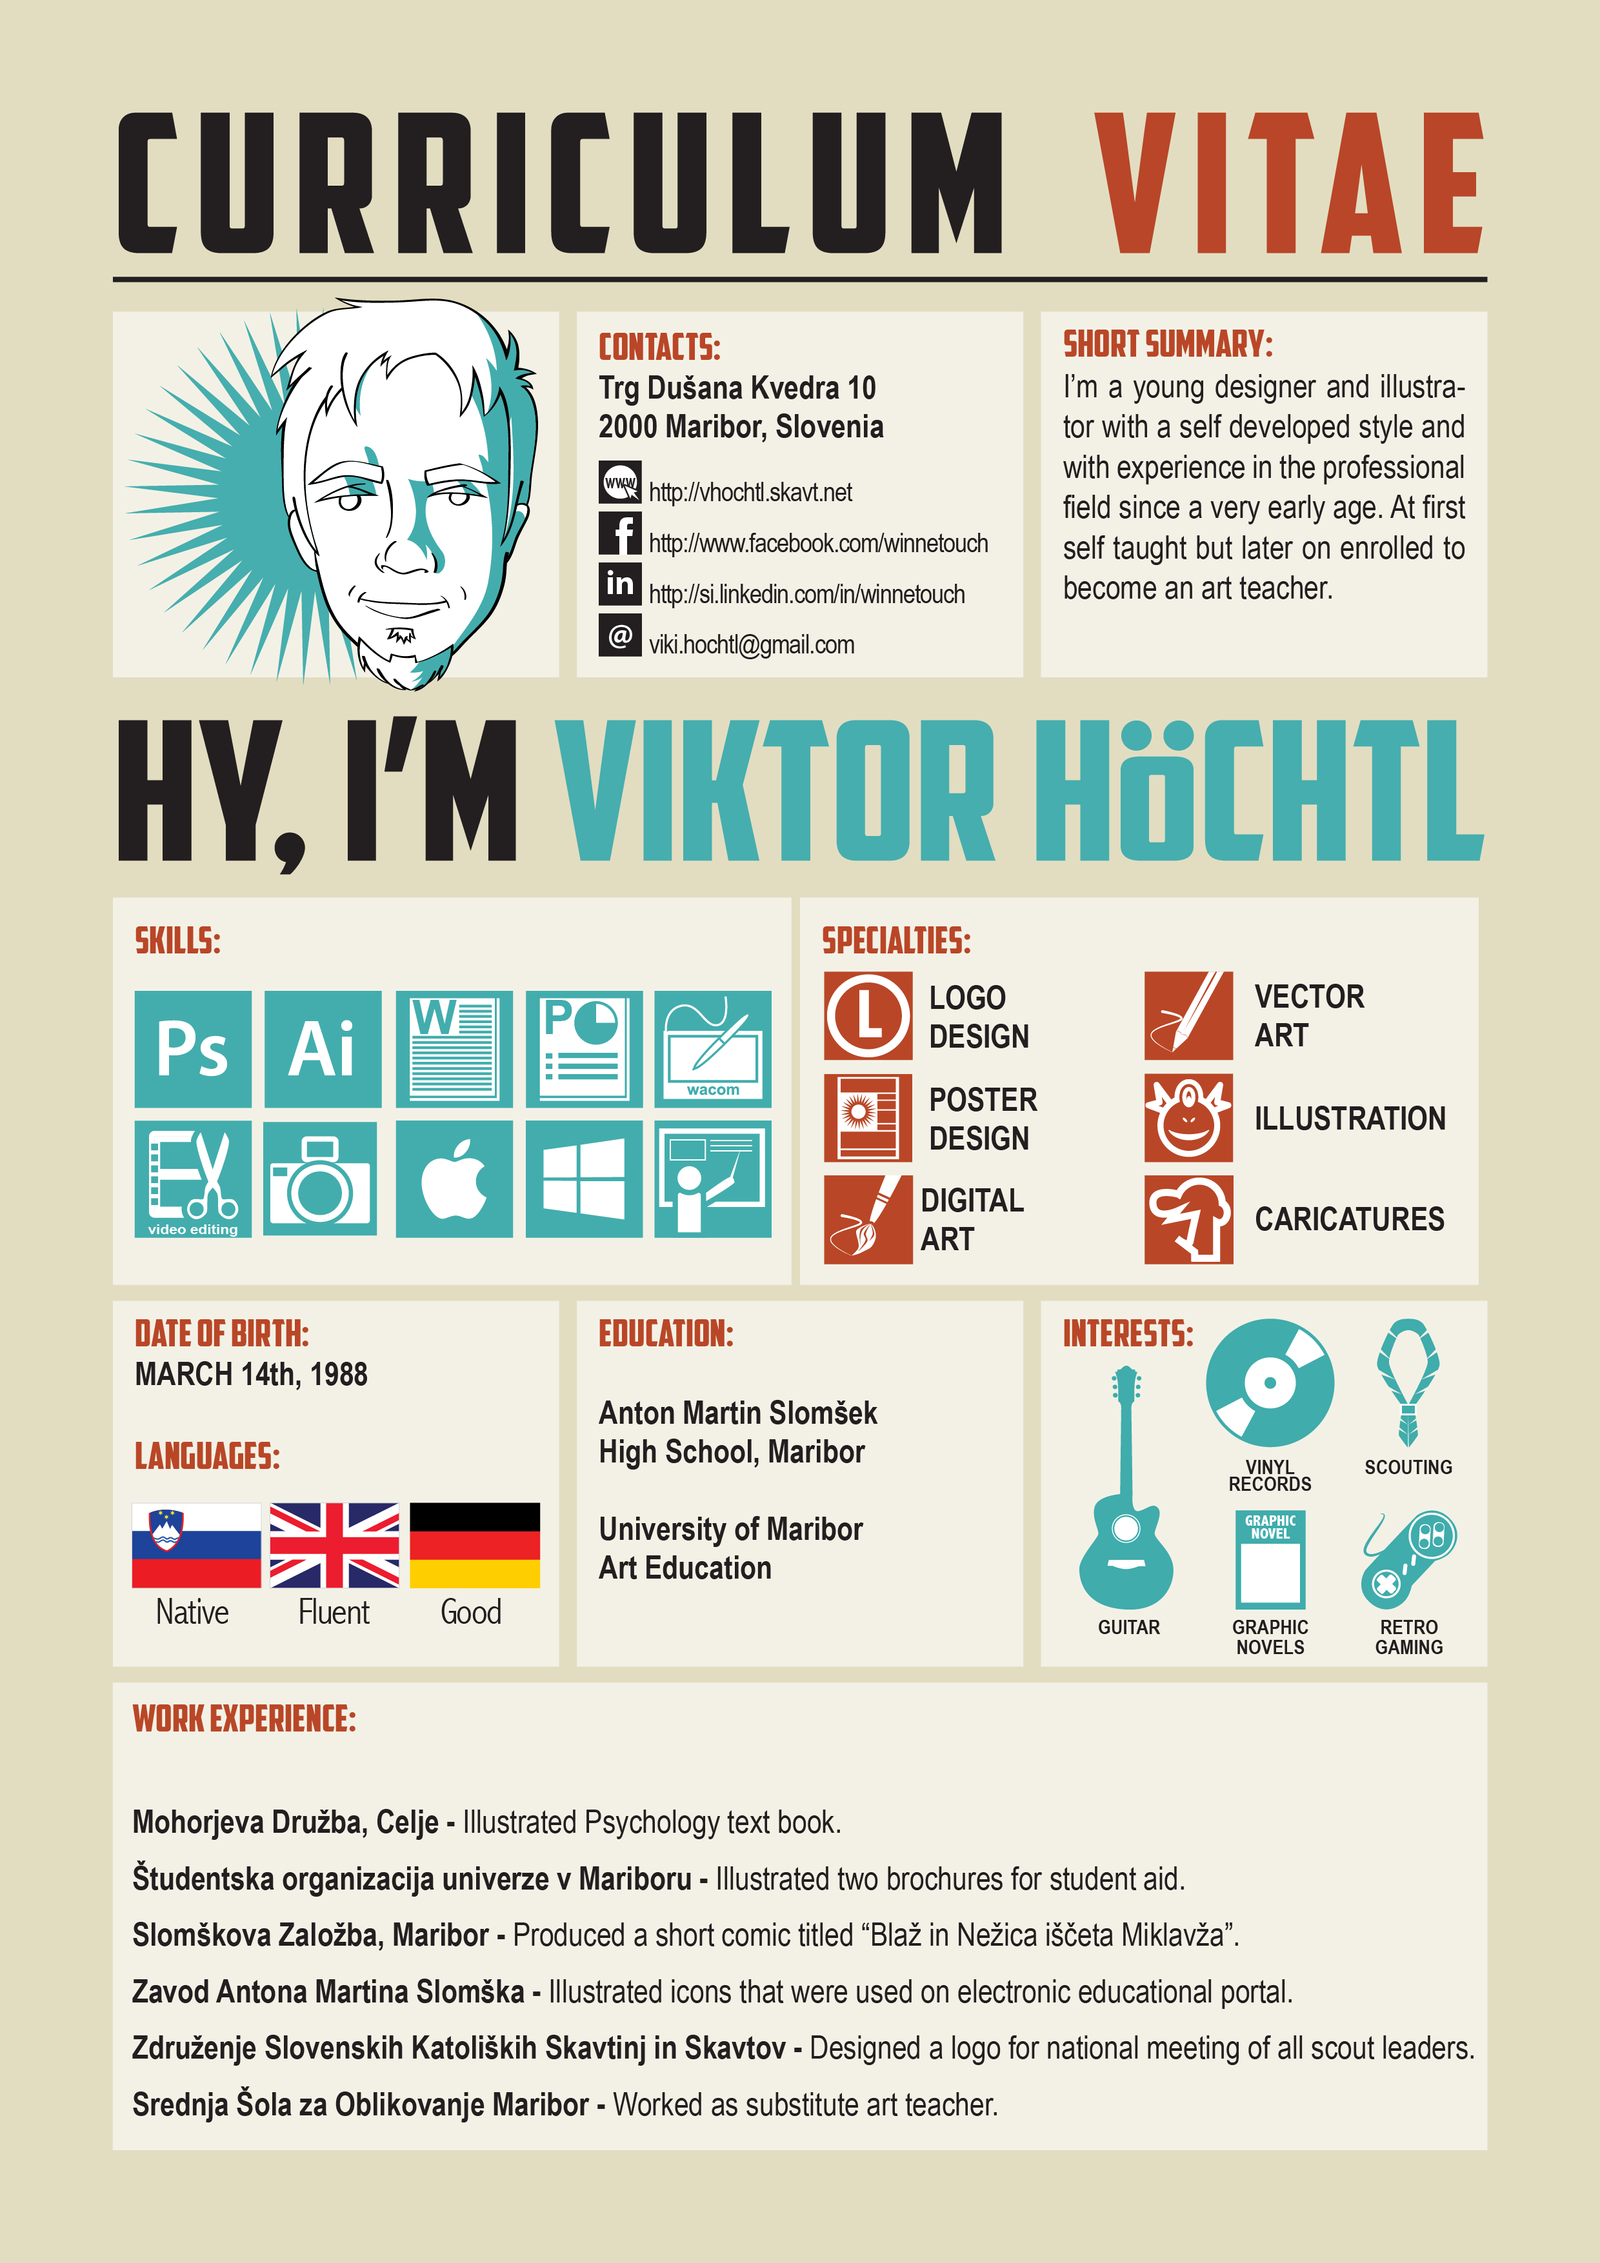 My Curriculum Vitae by winnetouch